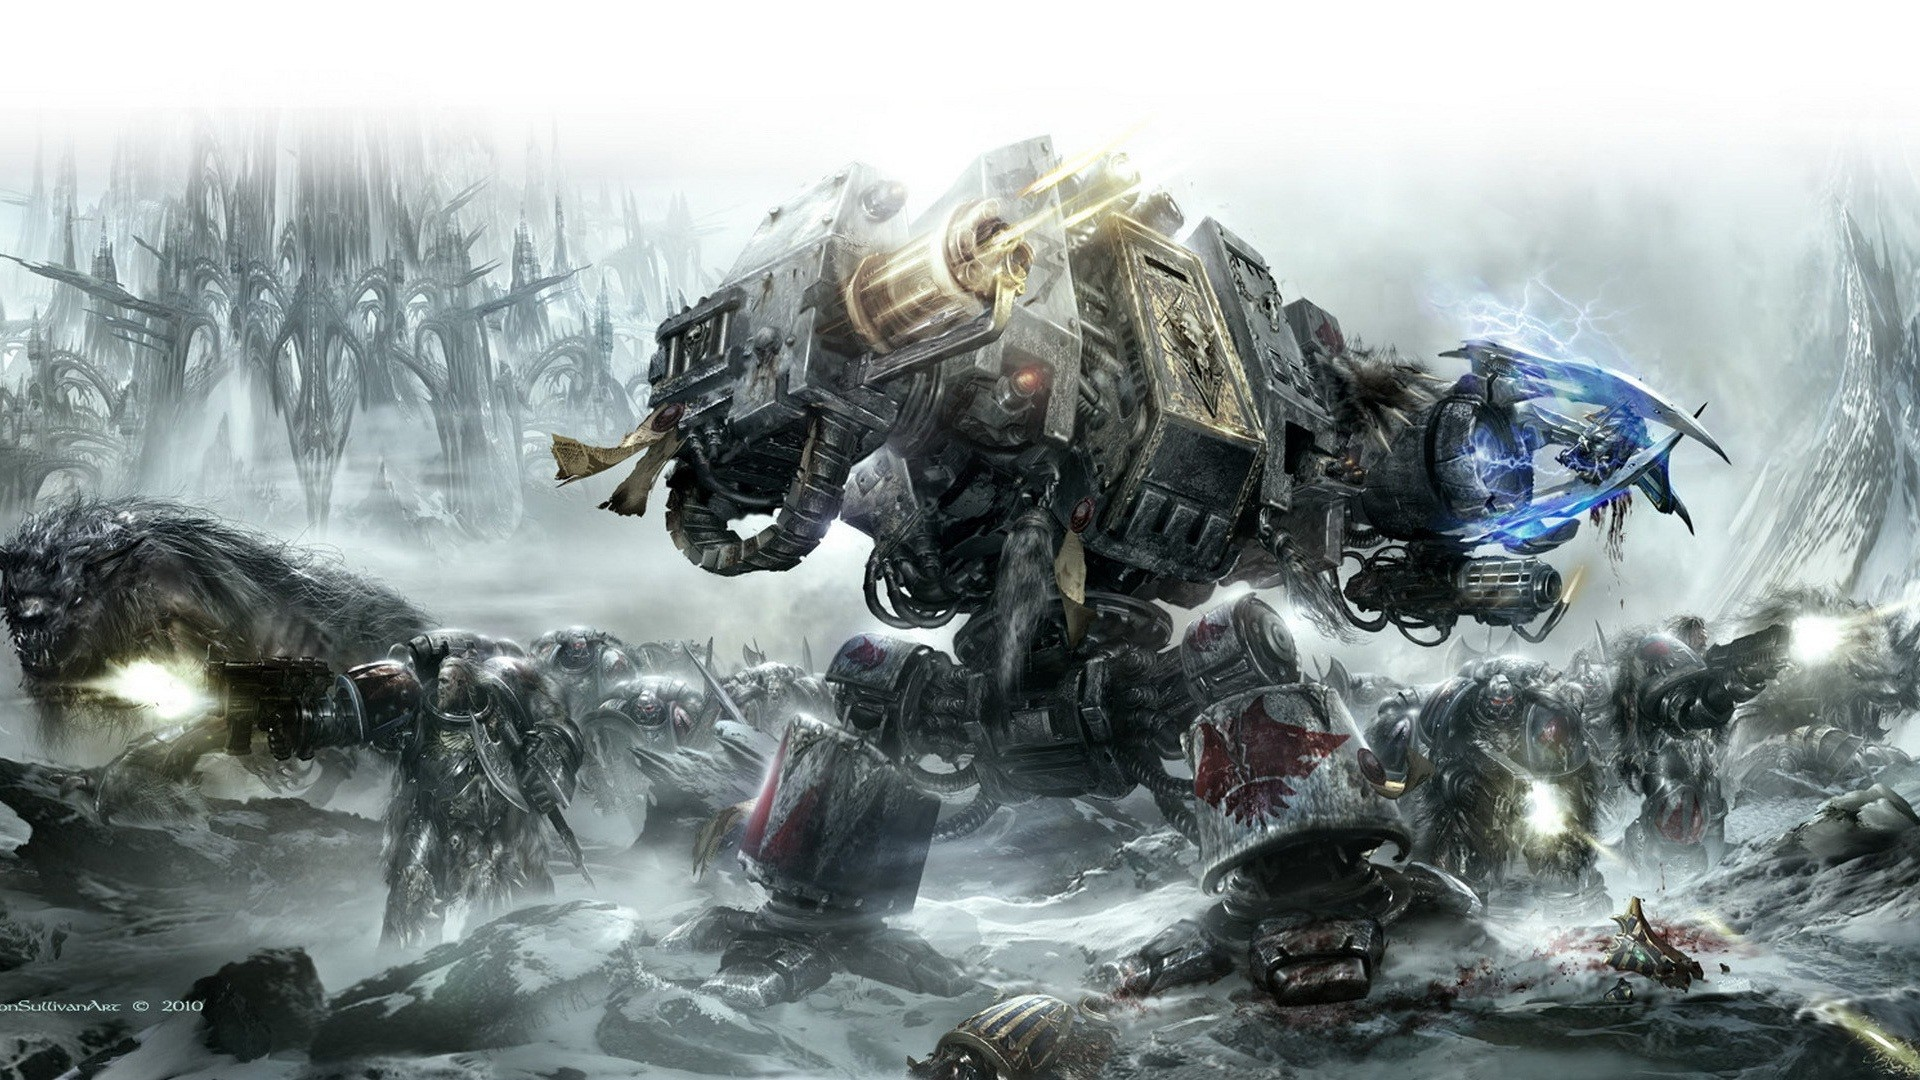 1920x1080 Warhammer K Computer Wallpapers Desktop Backgrounds x | HD Wallpapers |  Pinterest | Wallpaper, Computer wallpaper and Wallpaper desktop